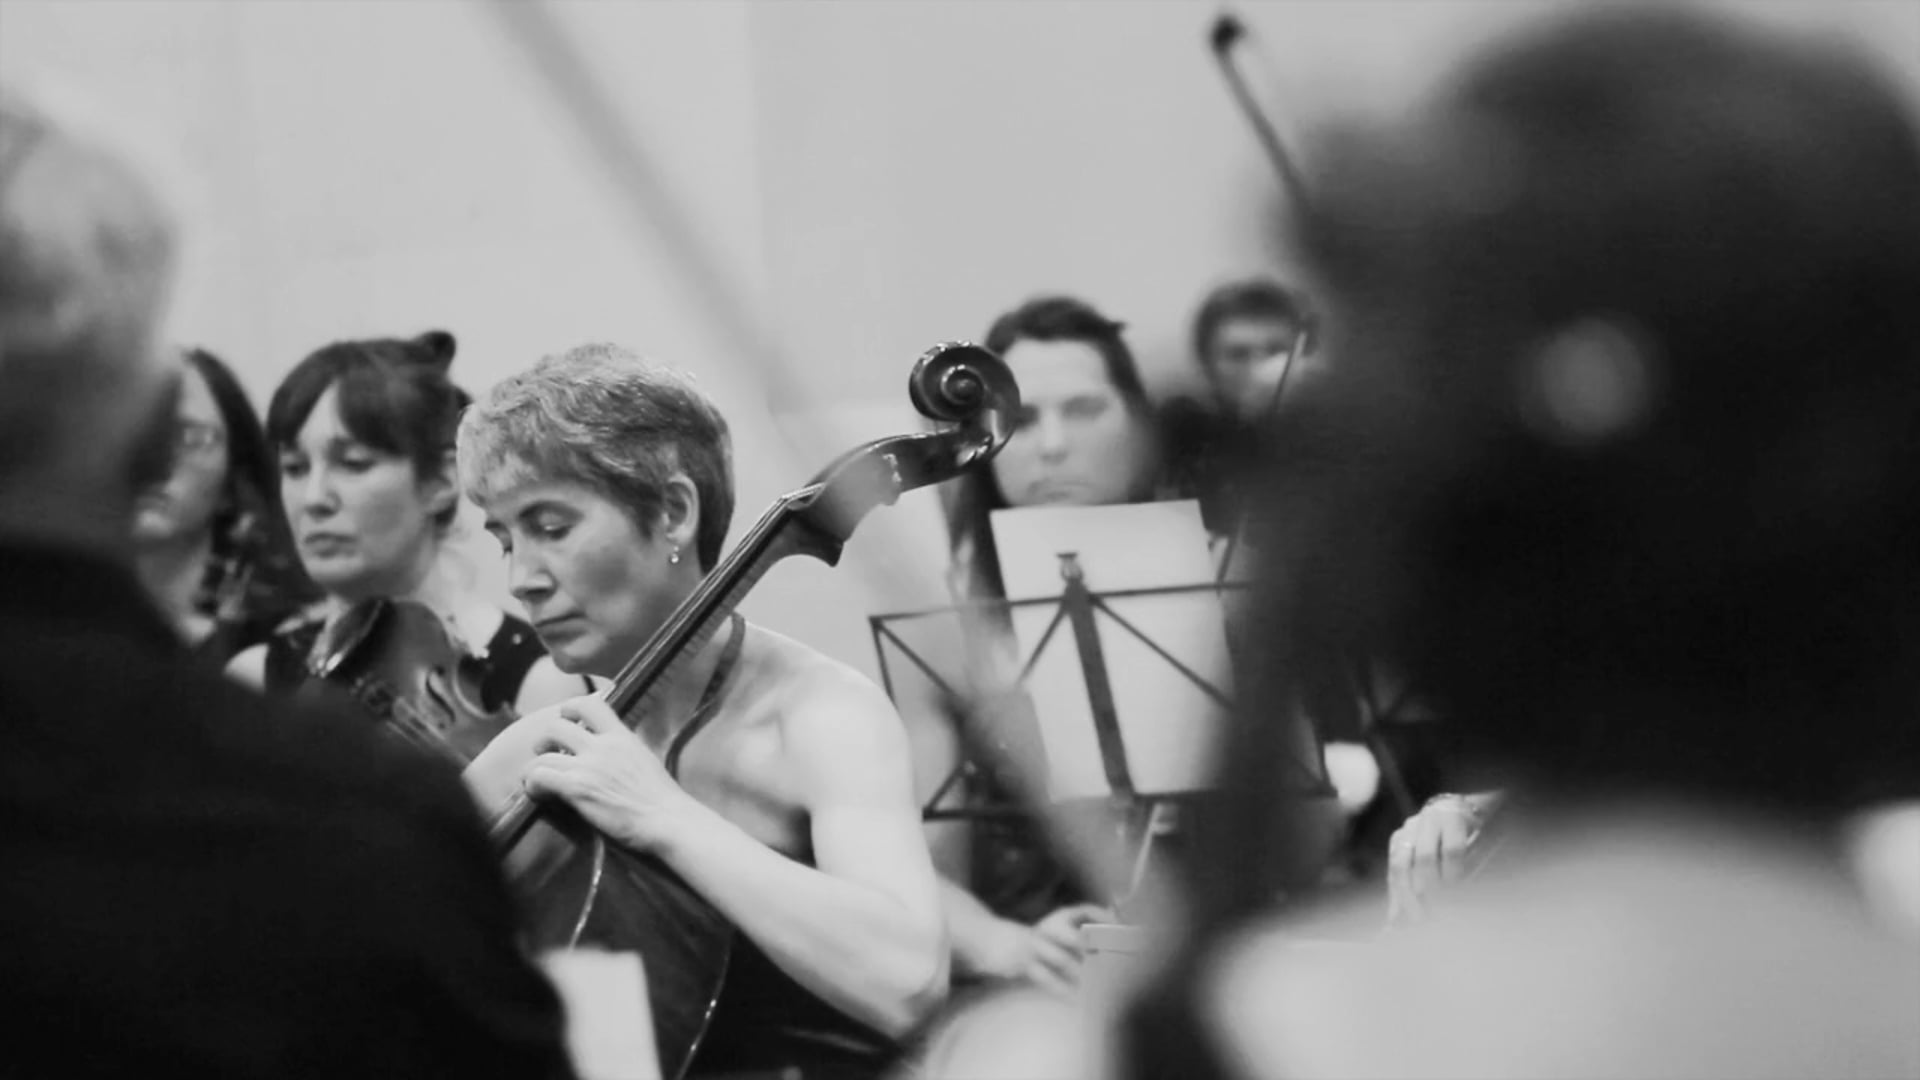 Sara Lovell Concert Excerpt with Bristol Symphony (in Support of Penny Brohn)